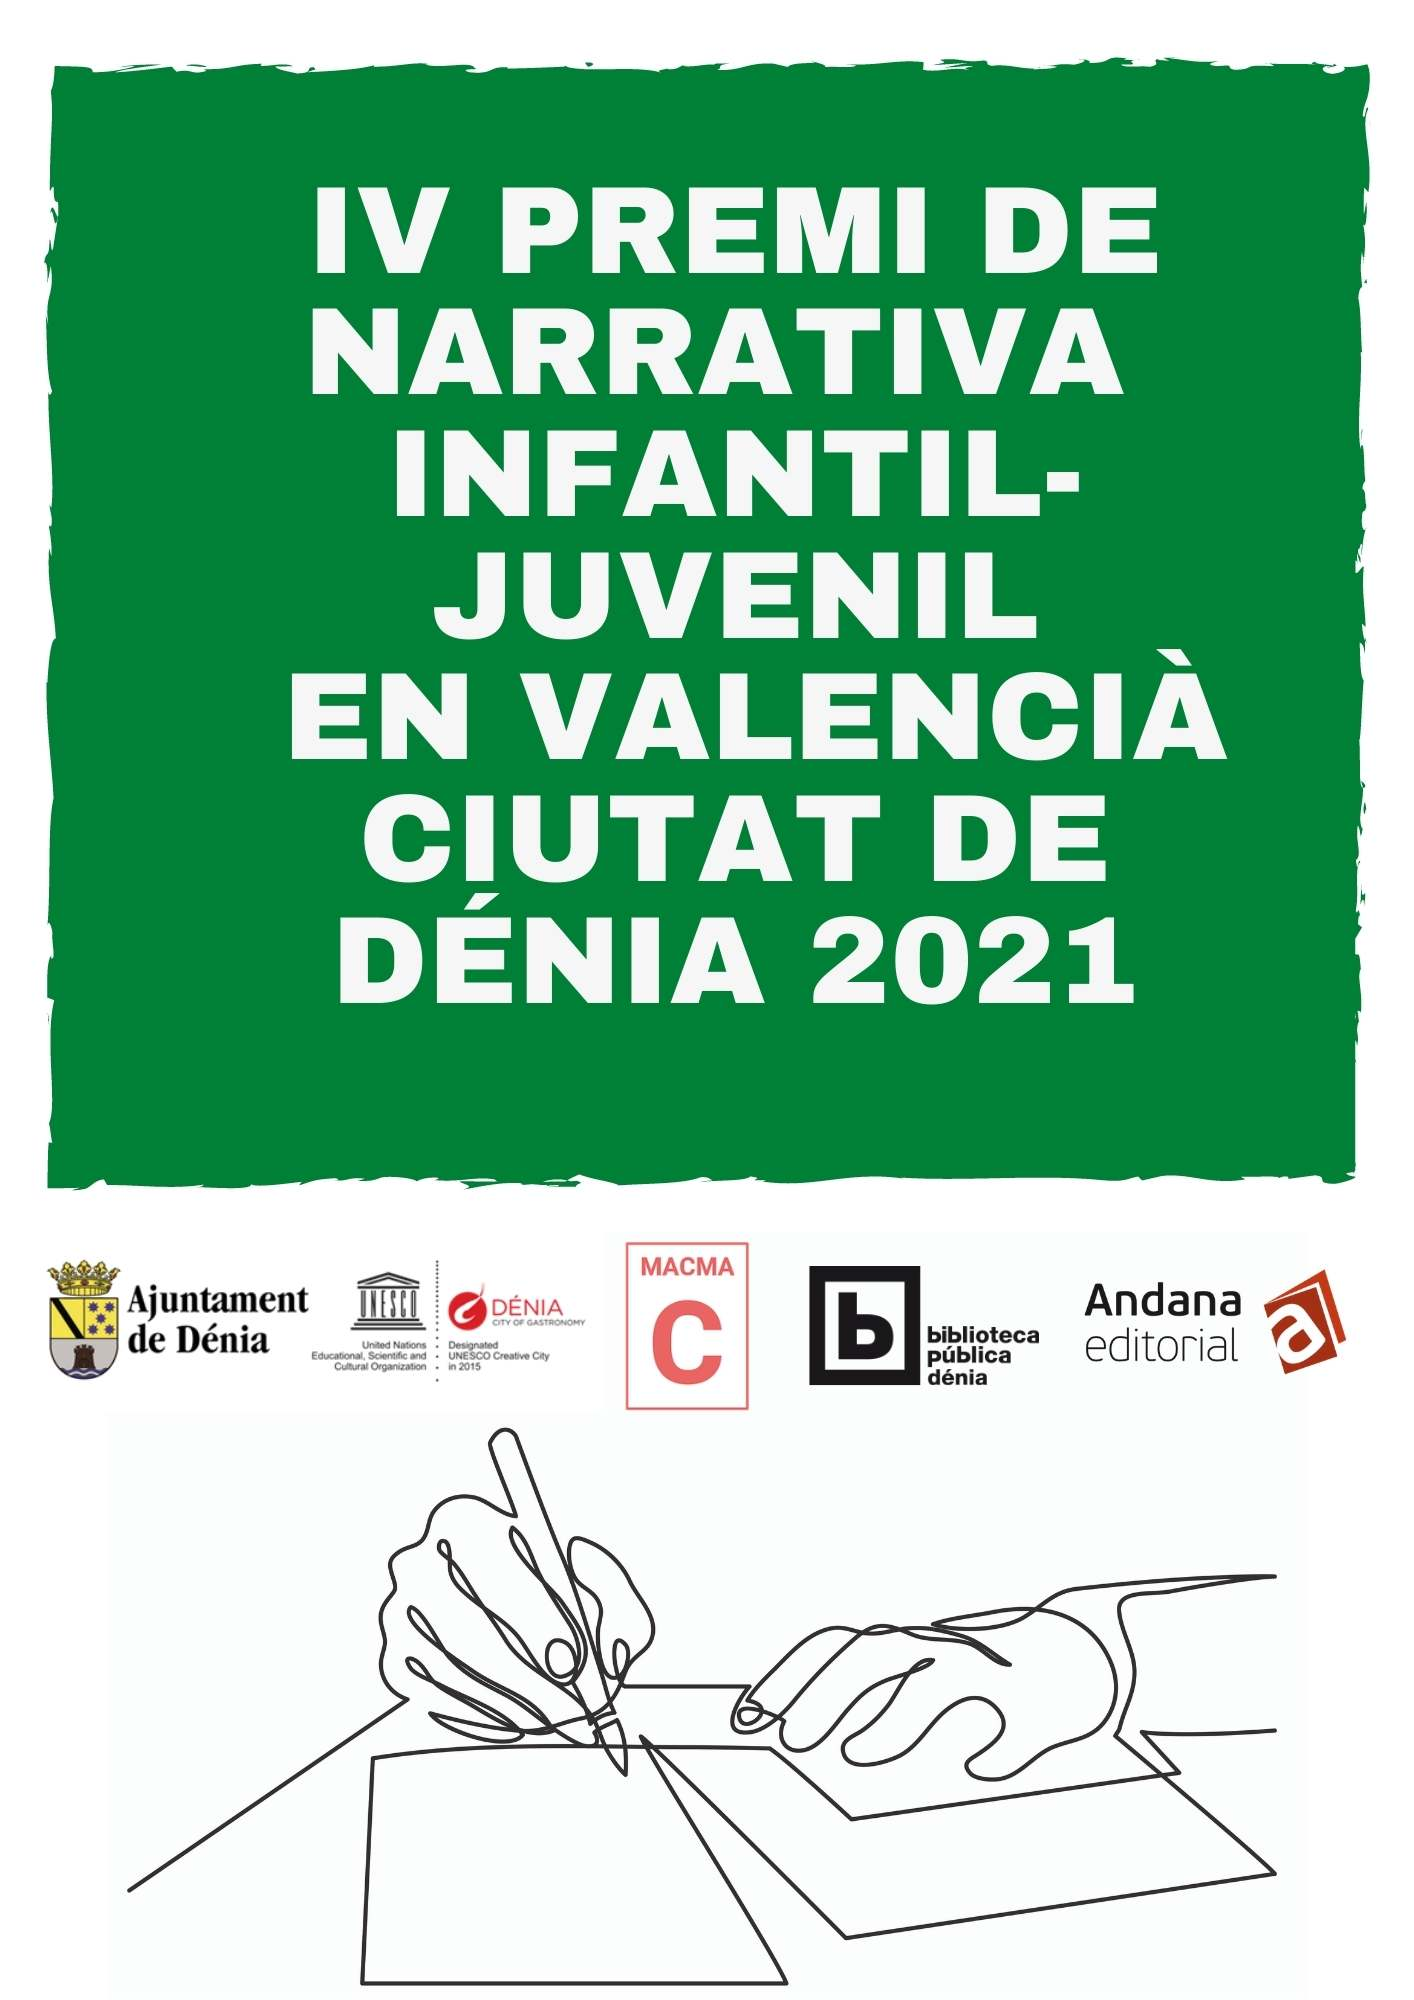 Fourth prize for Youth and Children's Narrative Ciutat de Dénia